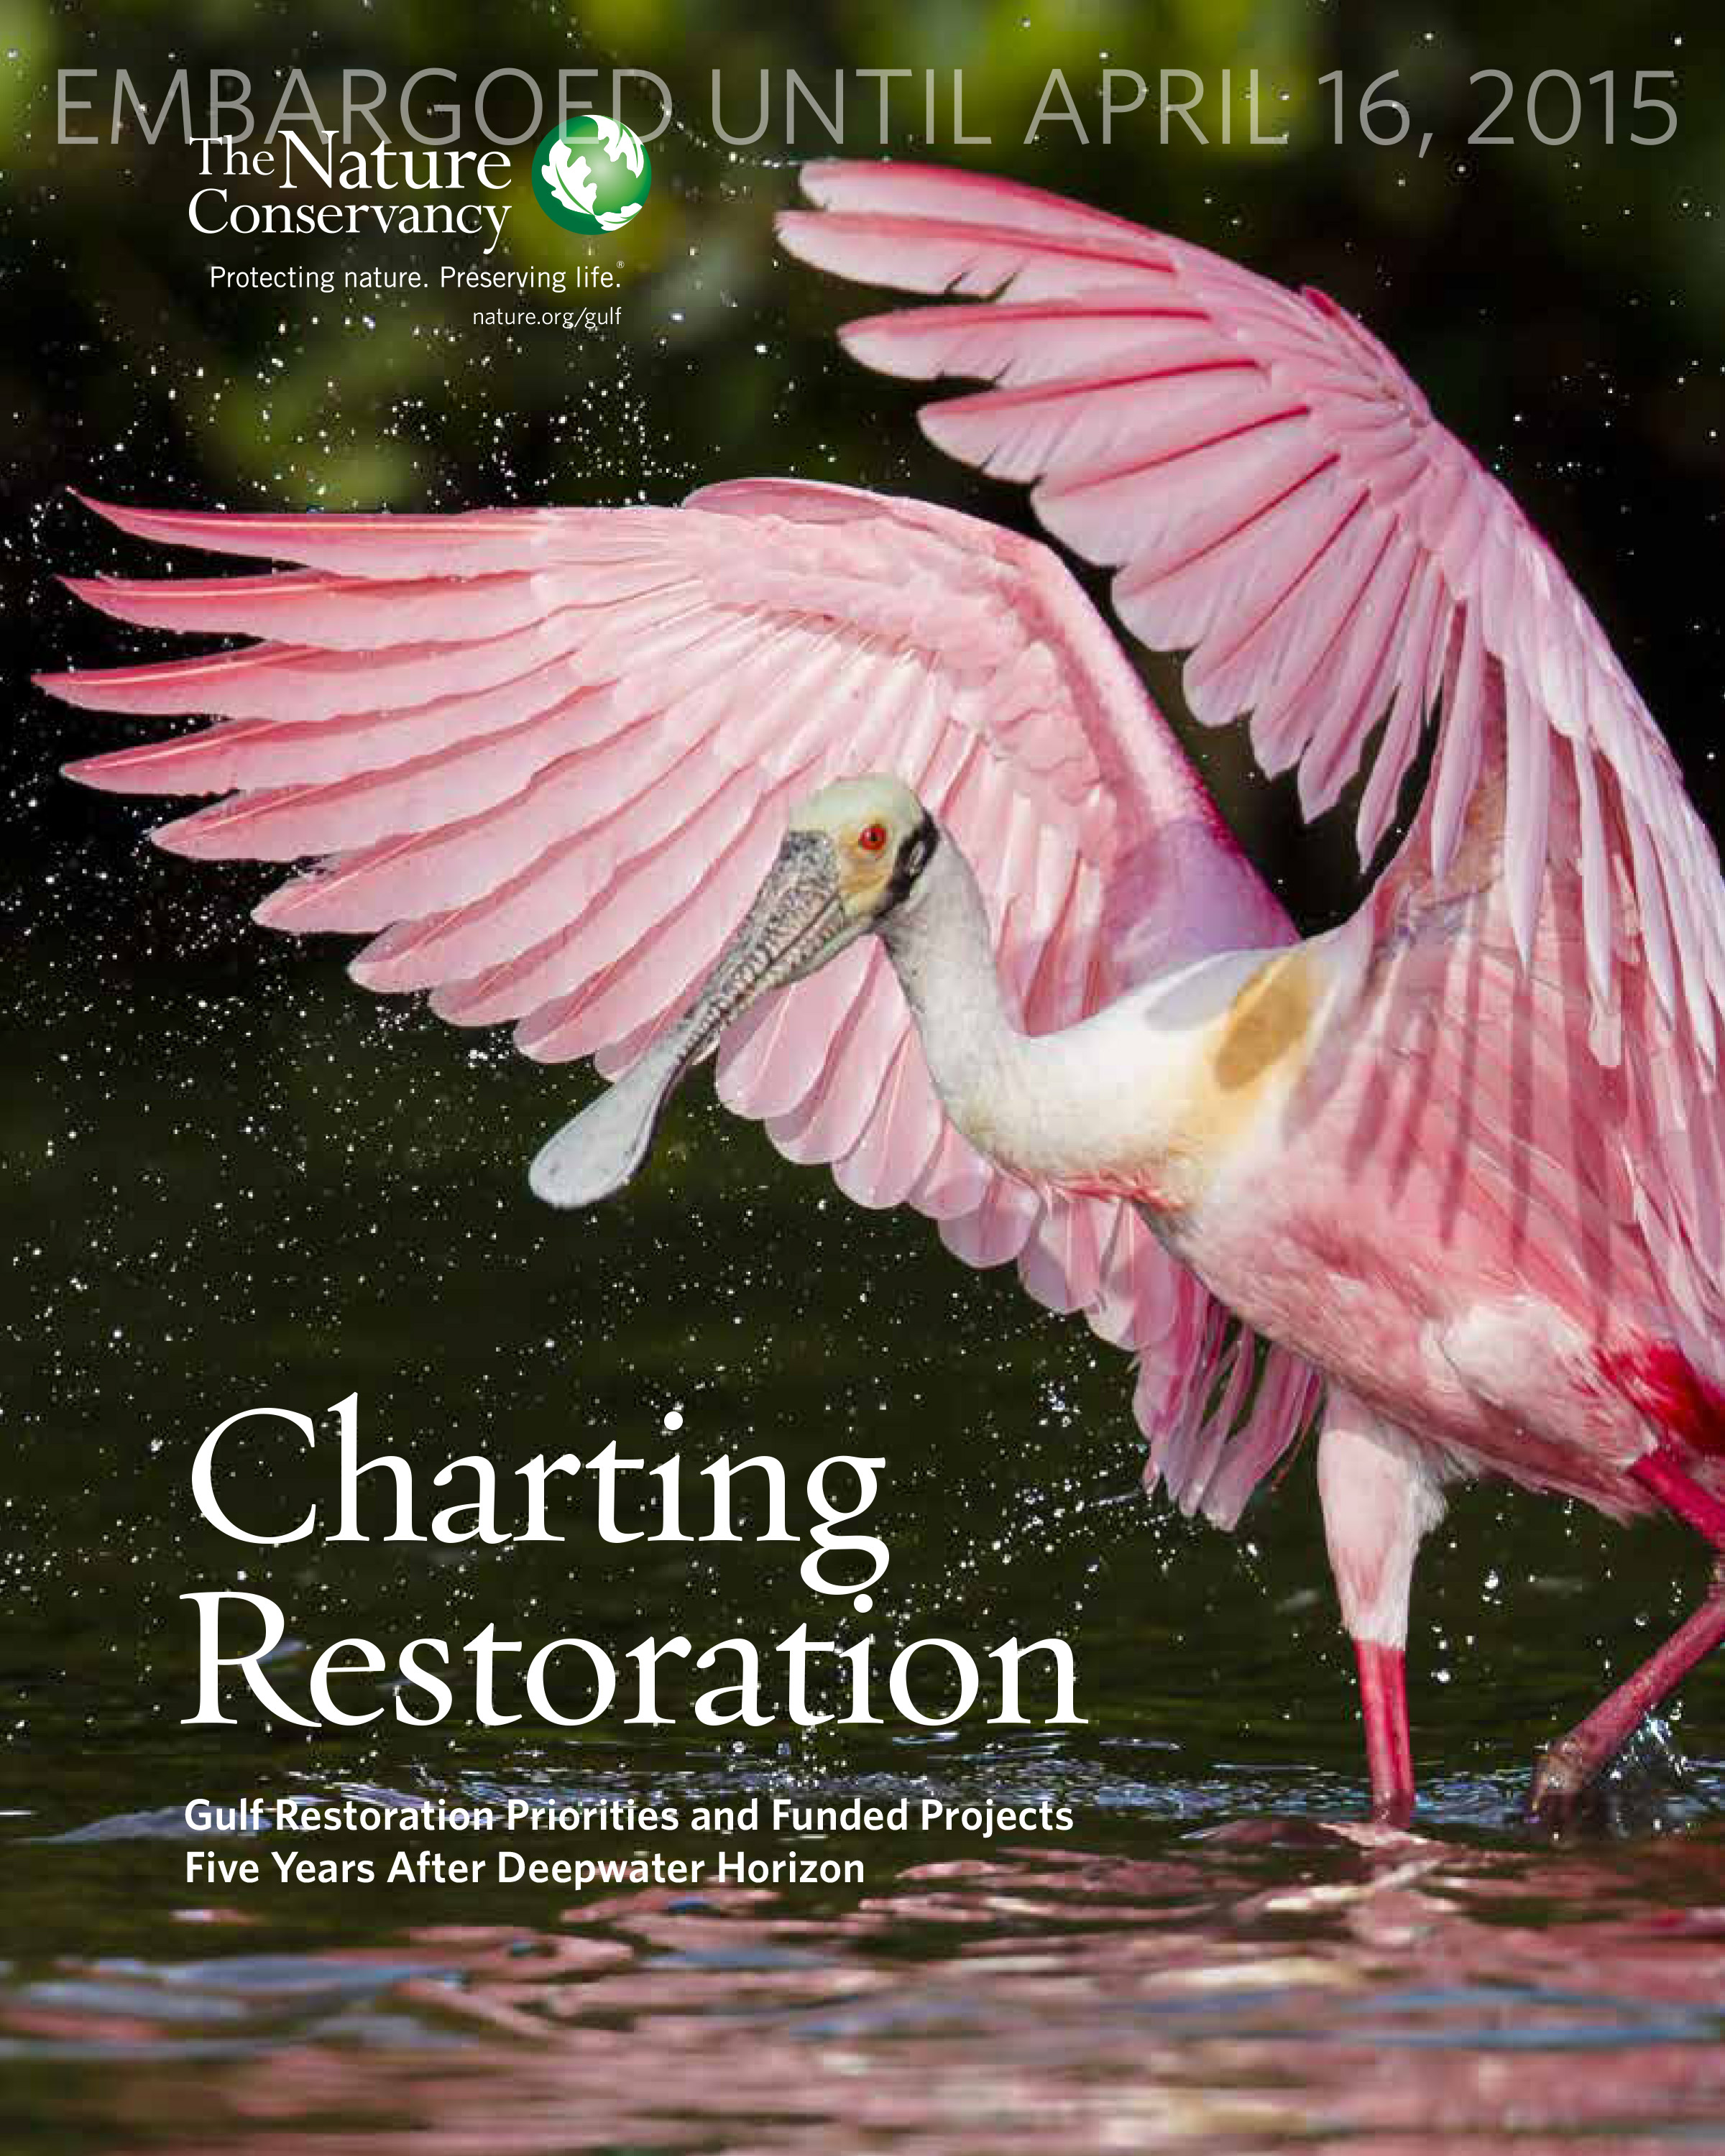 Charting Restoration 2015 Report Cover